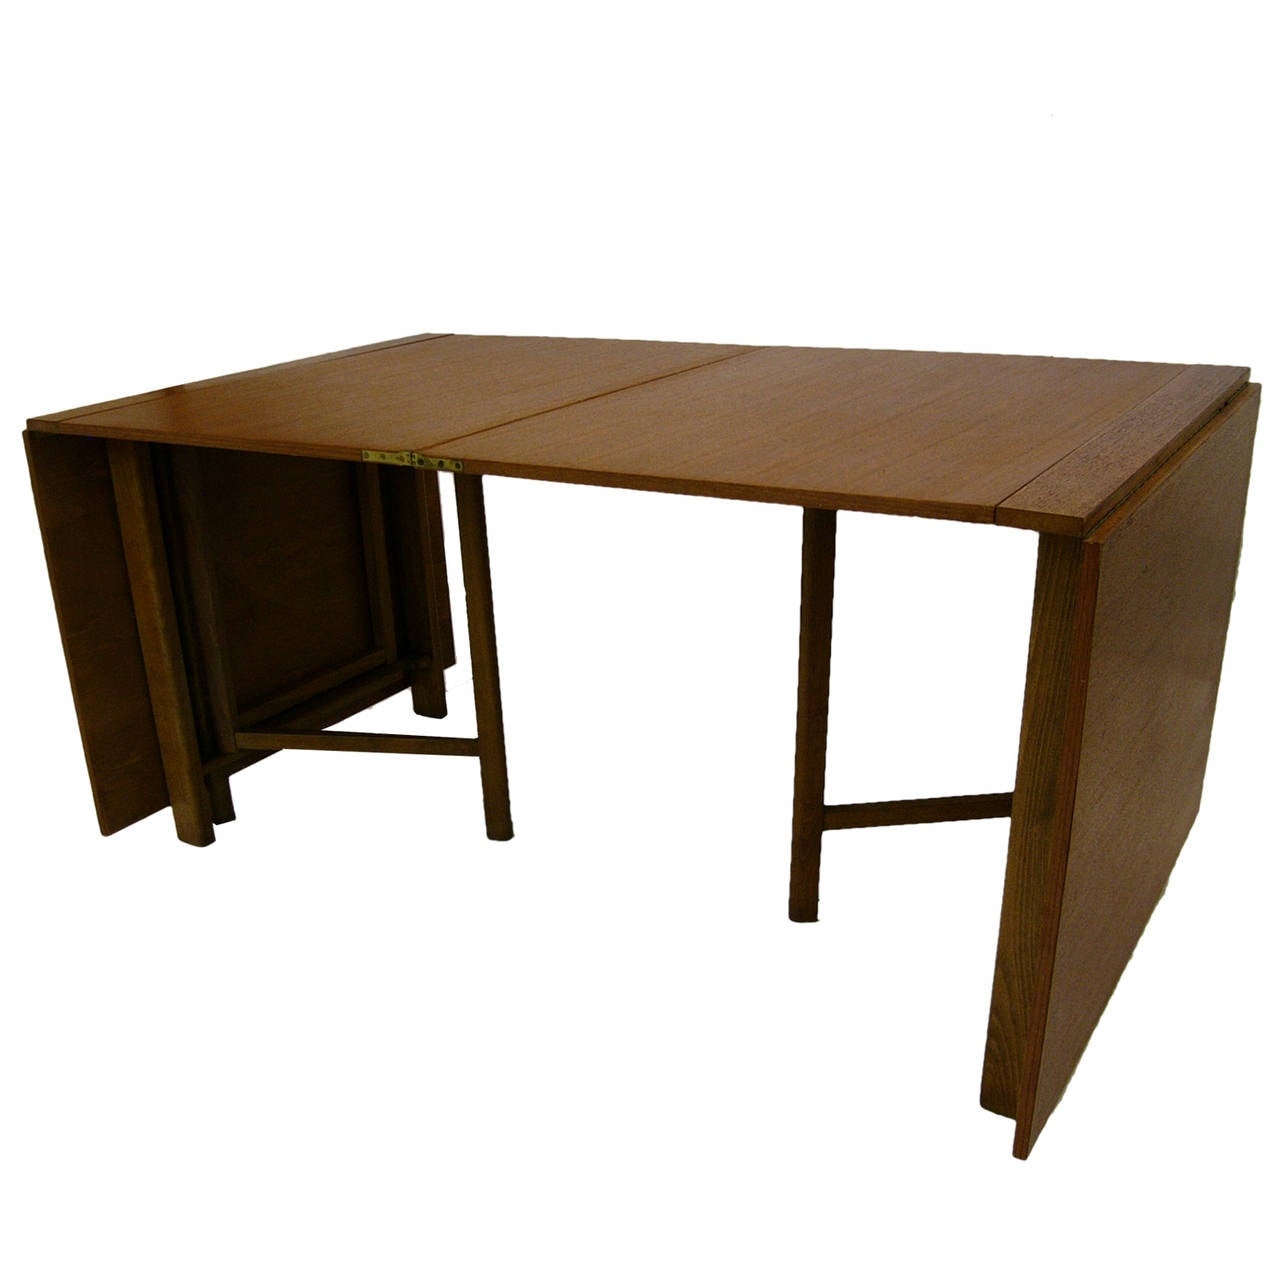 Bruno Mathsson Style Maria Drop Leaf Dining Table at 1stdibs : mathsson4l from www.1stdibs.com size 1280 x 1280 jpeg 69kB